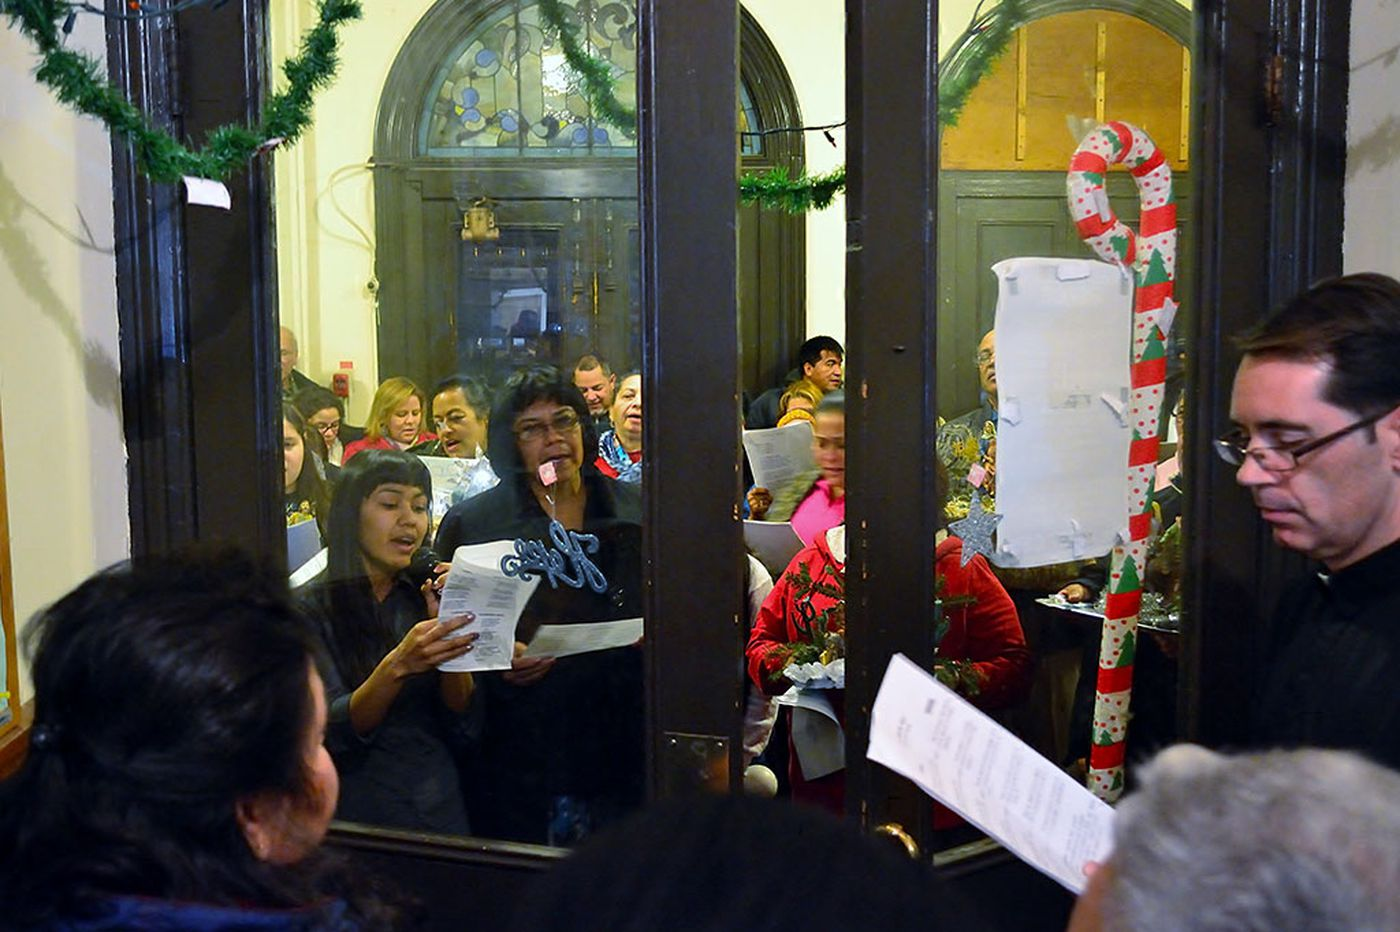 Biblical story resonates for woman in Phila. facing deportation